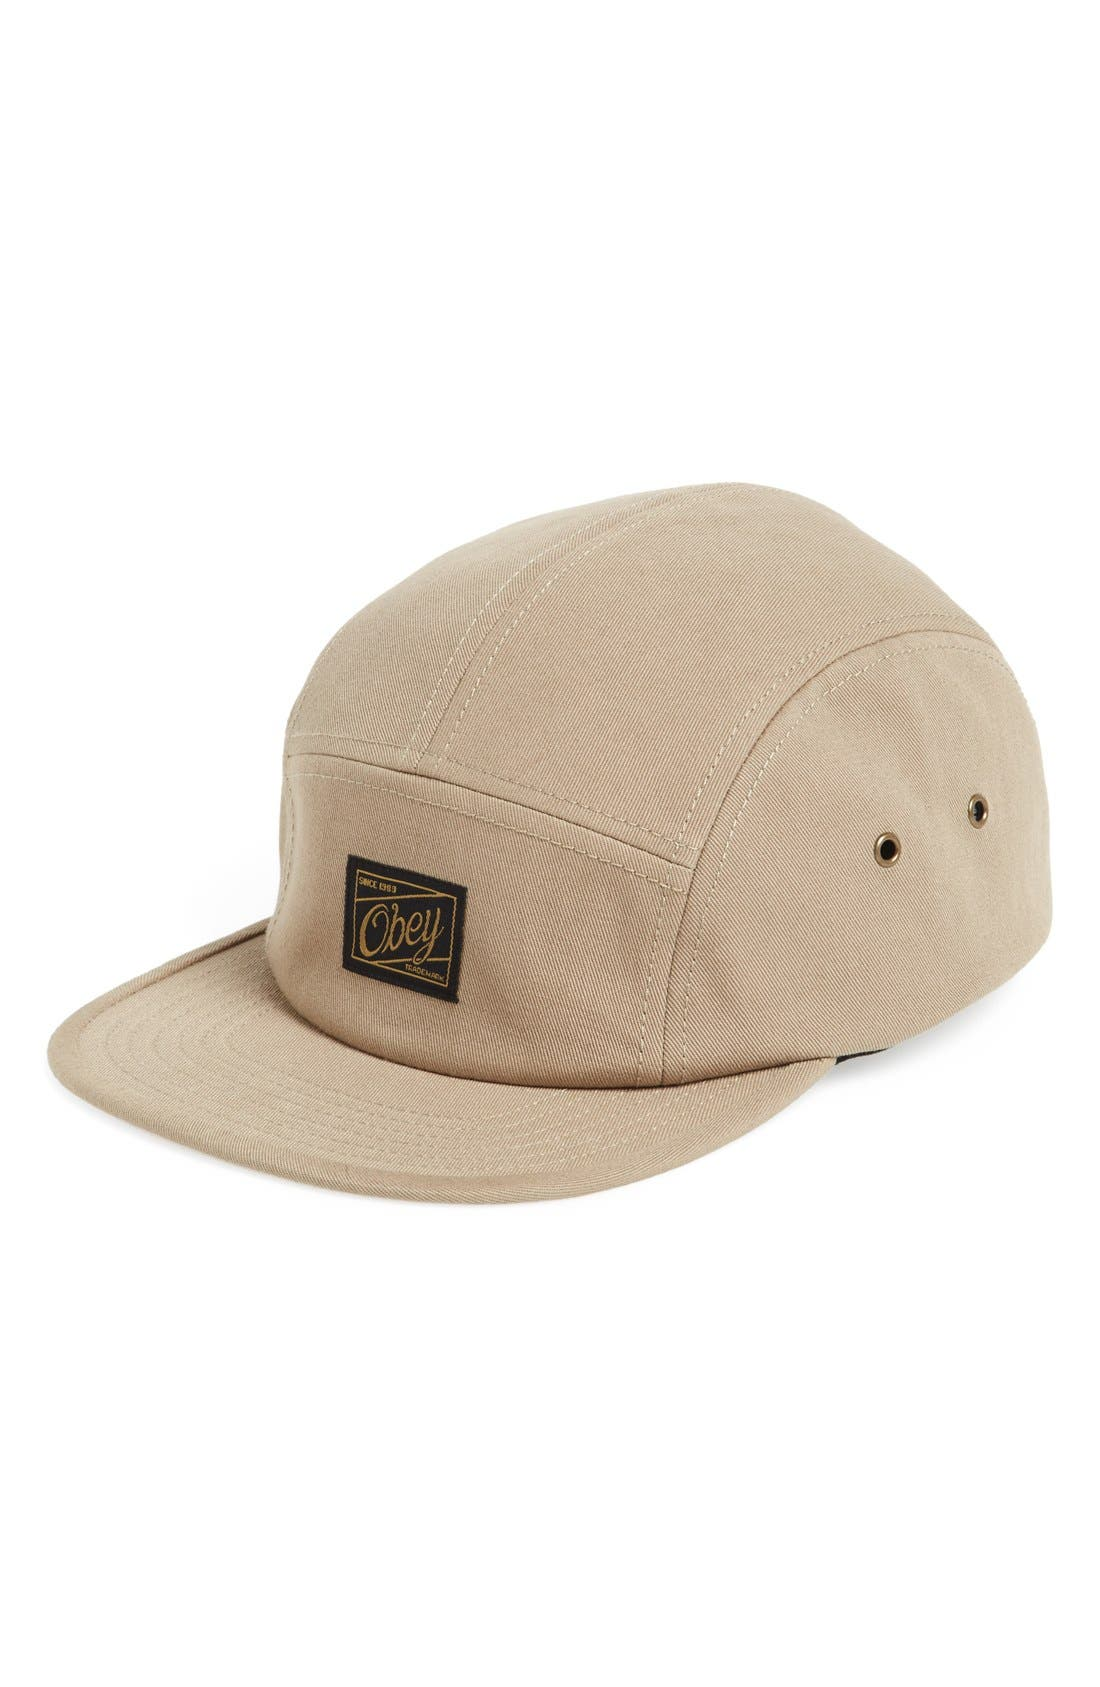 Main Image - Obey 'Expedition' Hat